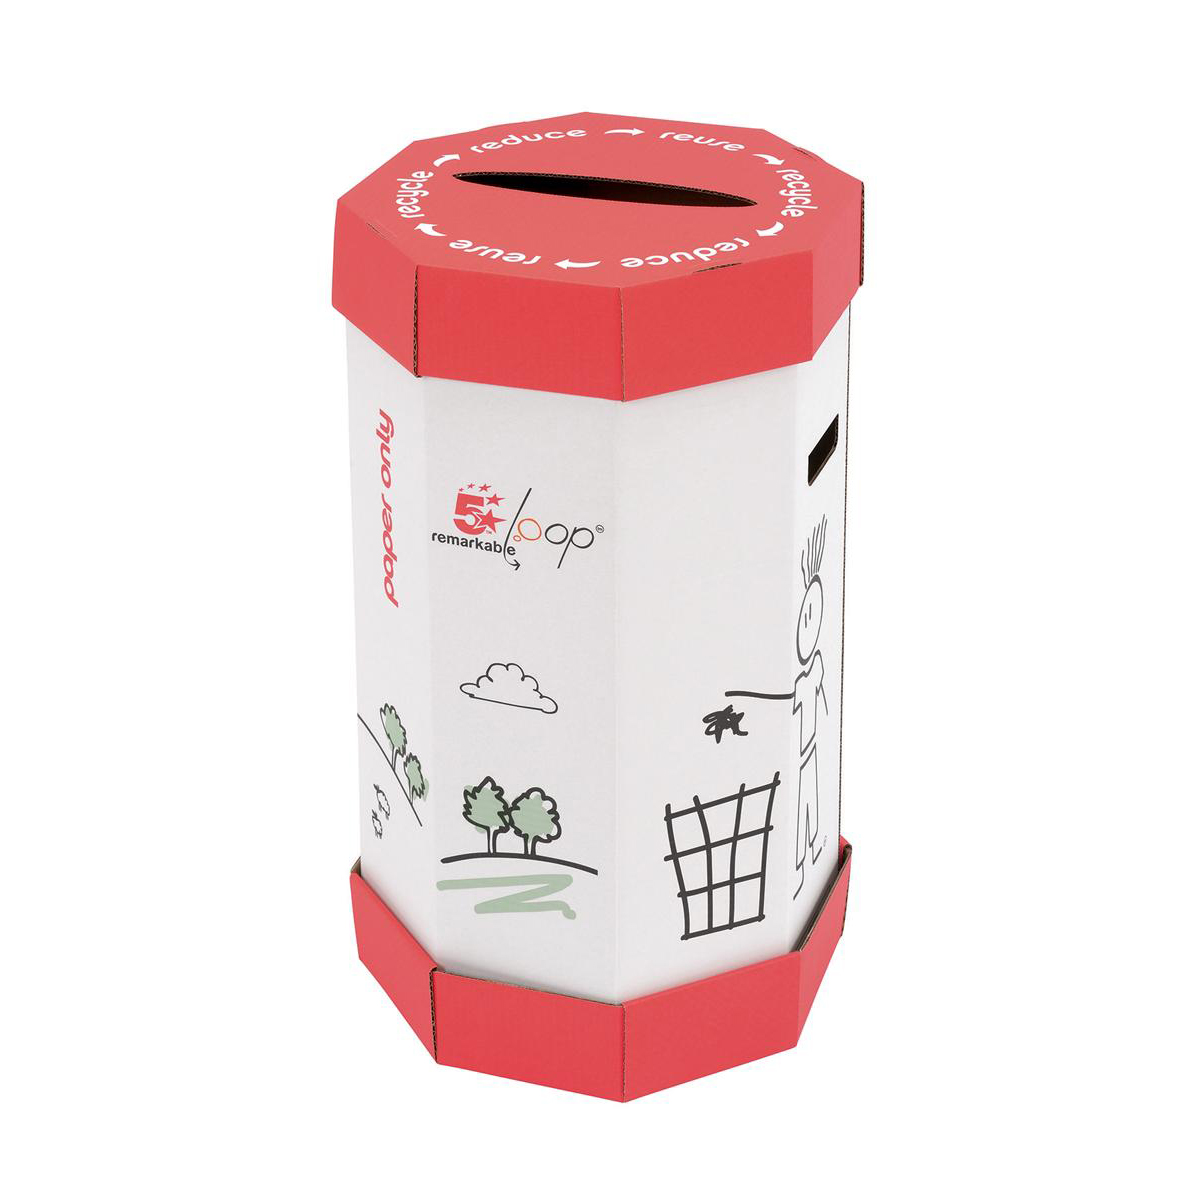 5 Star Facilities Remarkable Loop Paper Recycling Office Waste Bin 60 Litres [Pack 5]